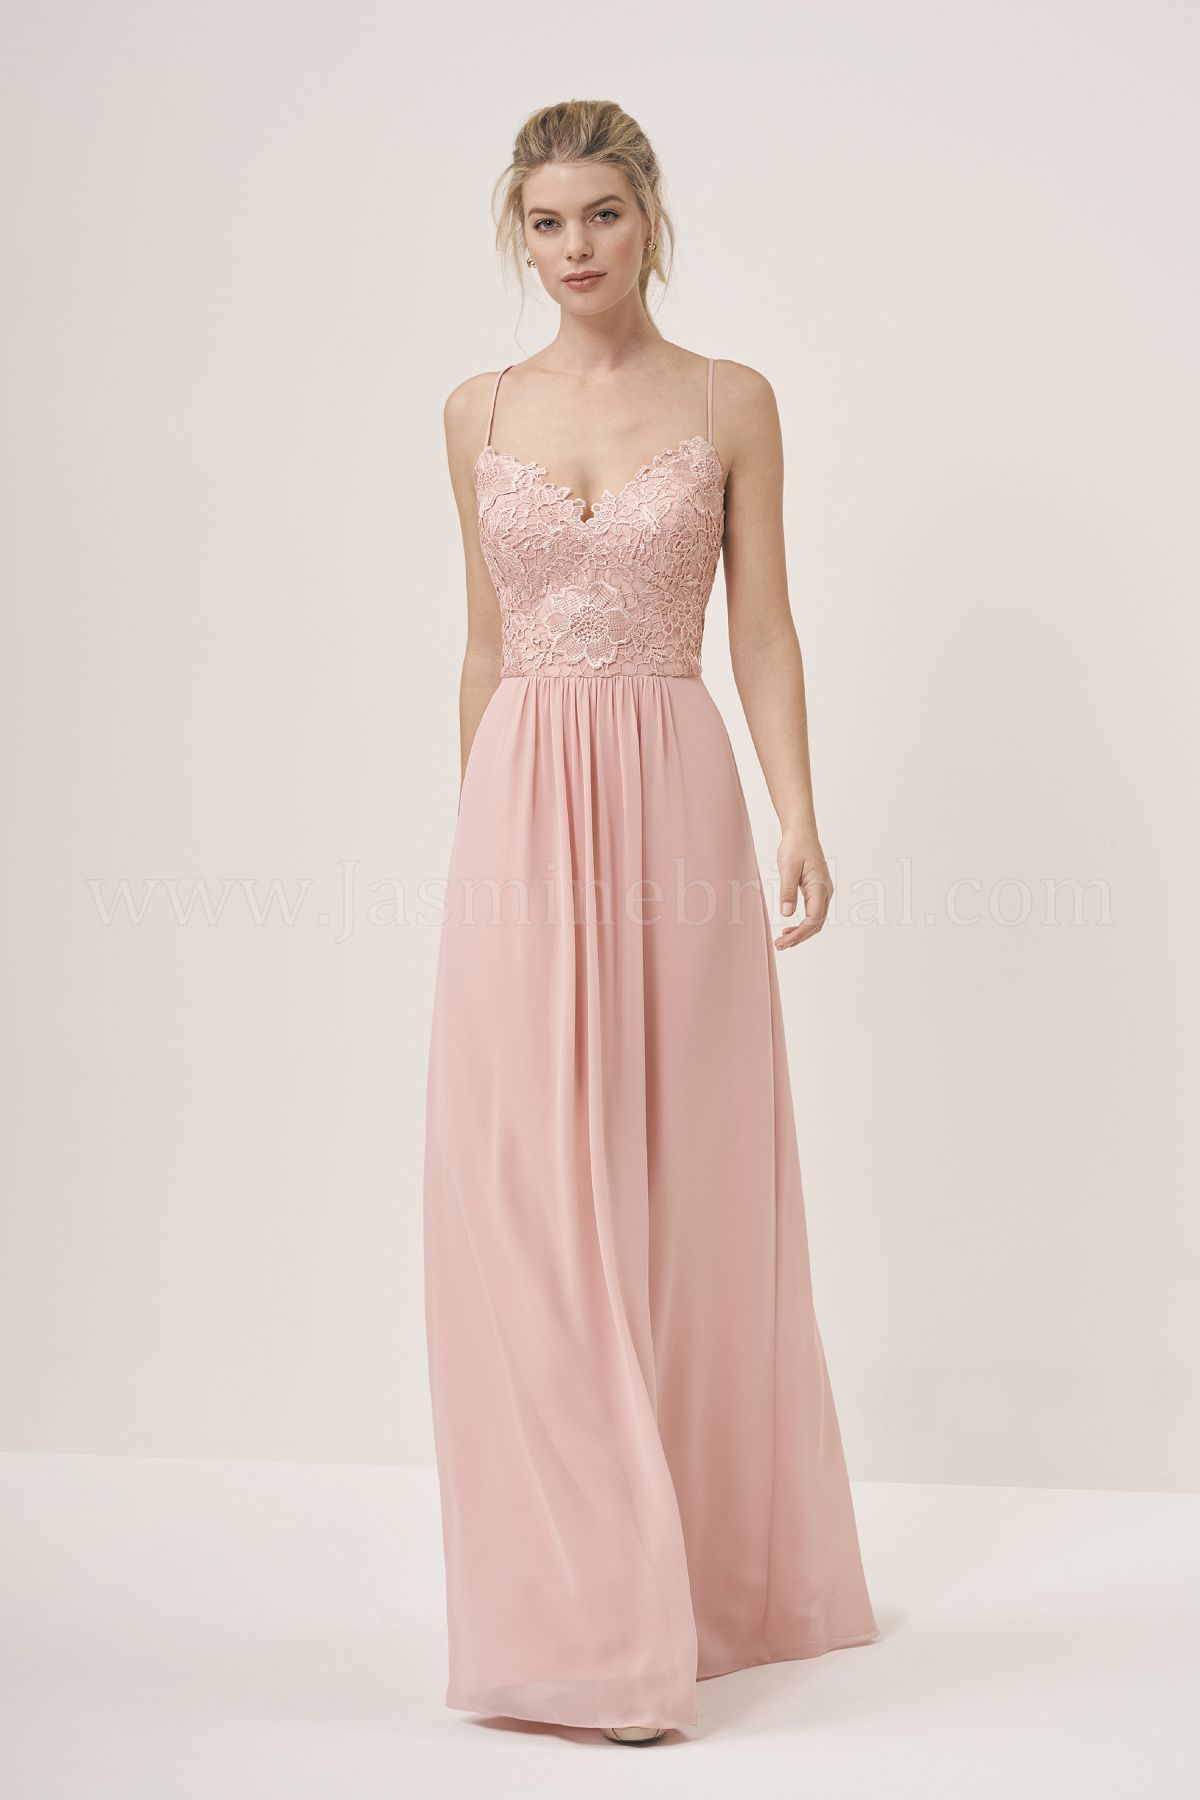 bridesmaid-dresses-P196058-F